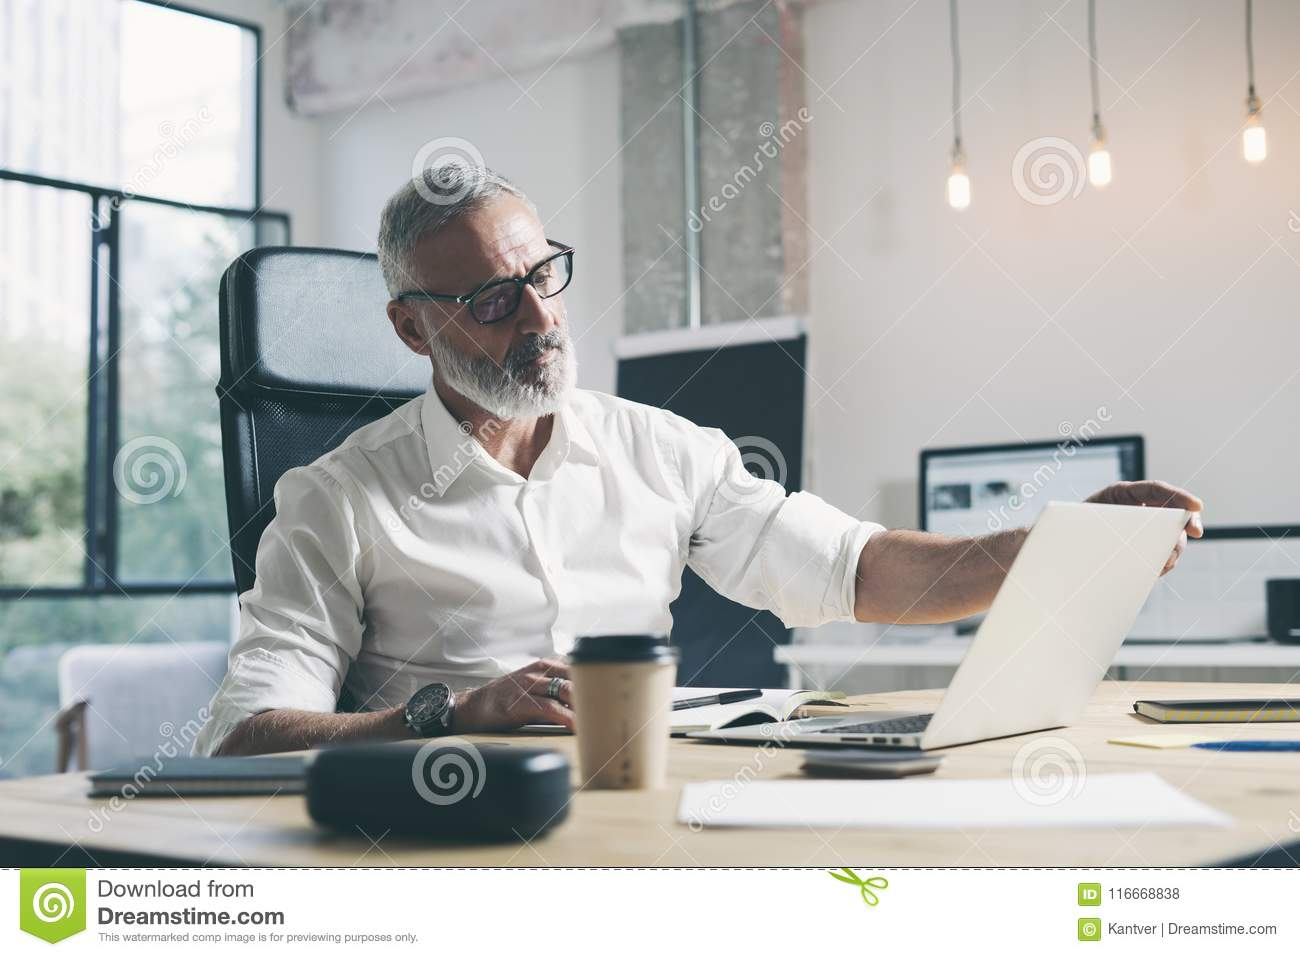 Attractive and confidental adult businessman using mobile laptop computer while working at the wooden table at modern